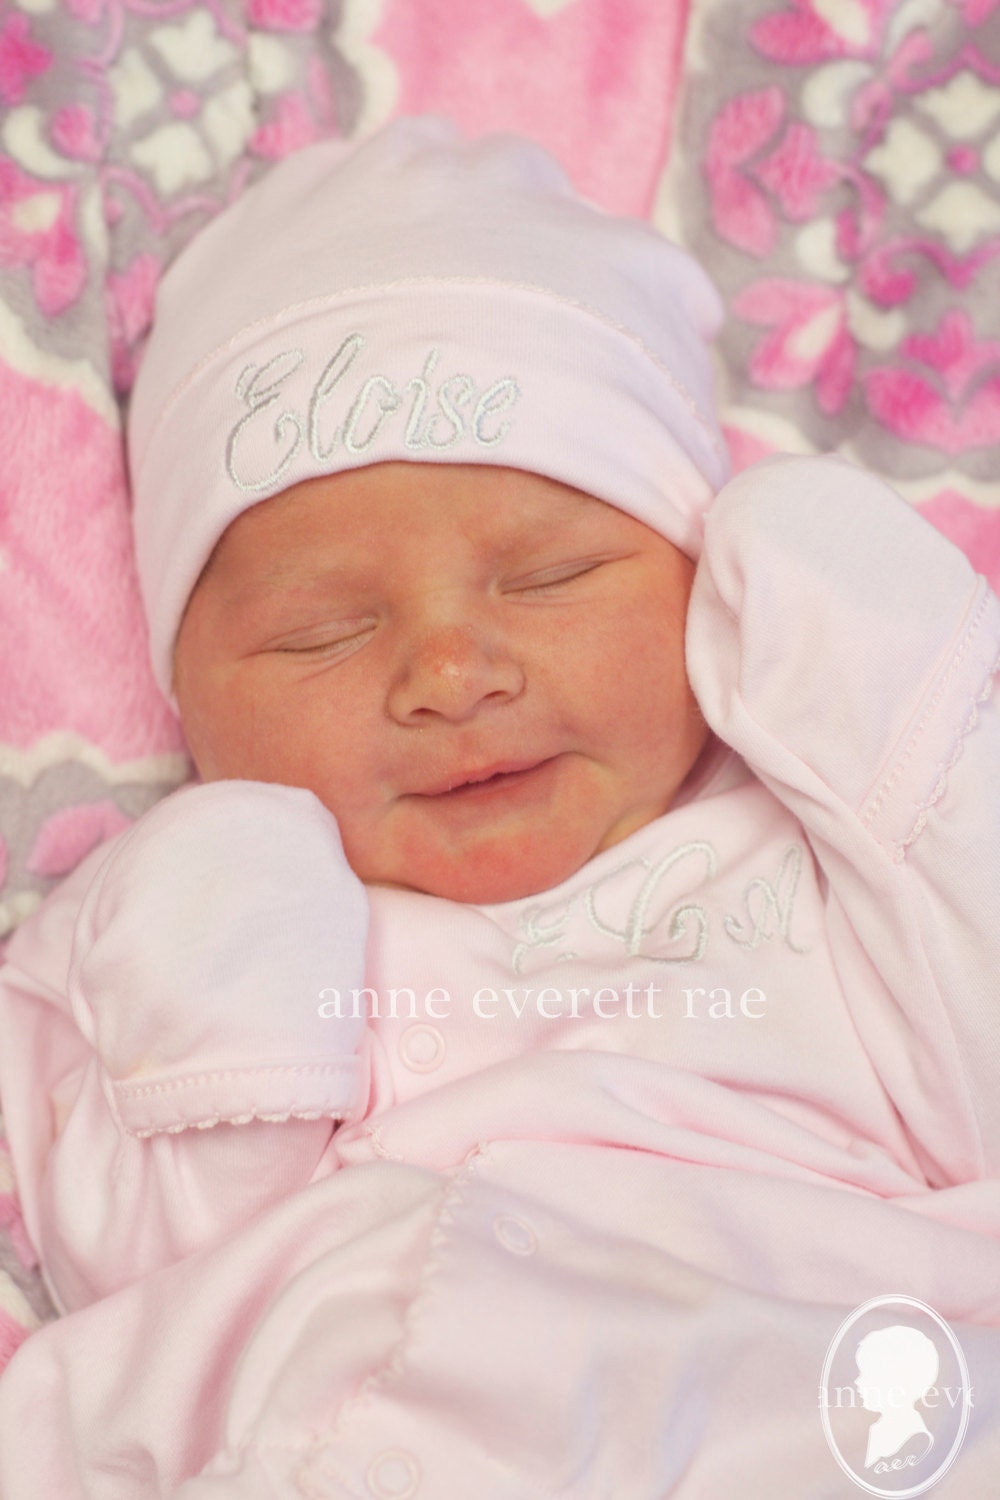 Baby Girl coming home outfit is picture perfect for newborn pictures and perfect for her coming home smileqbl.gq layette gown is per fect for your new baby girls going home outfit. Her special day deserves a very special layette gown.